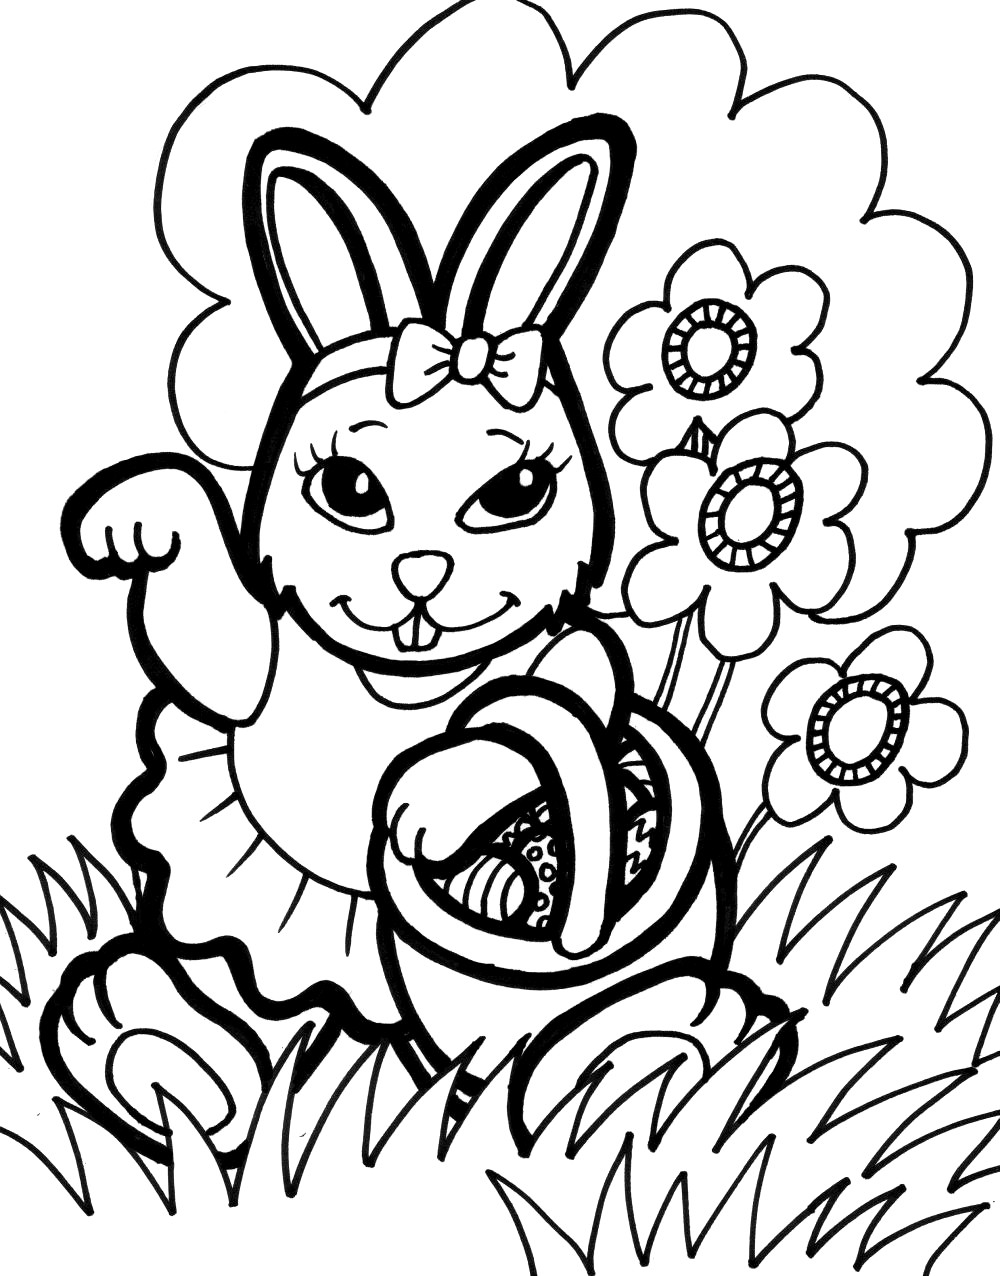 Bunnies Coloring Pages  Bunny Coloring Pages Best Coloring Pages For Kids